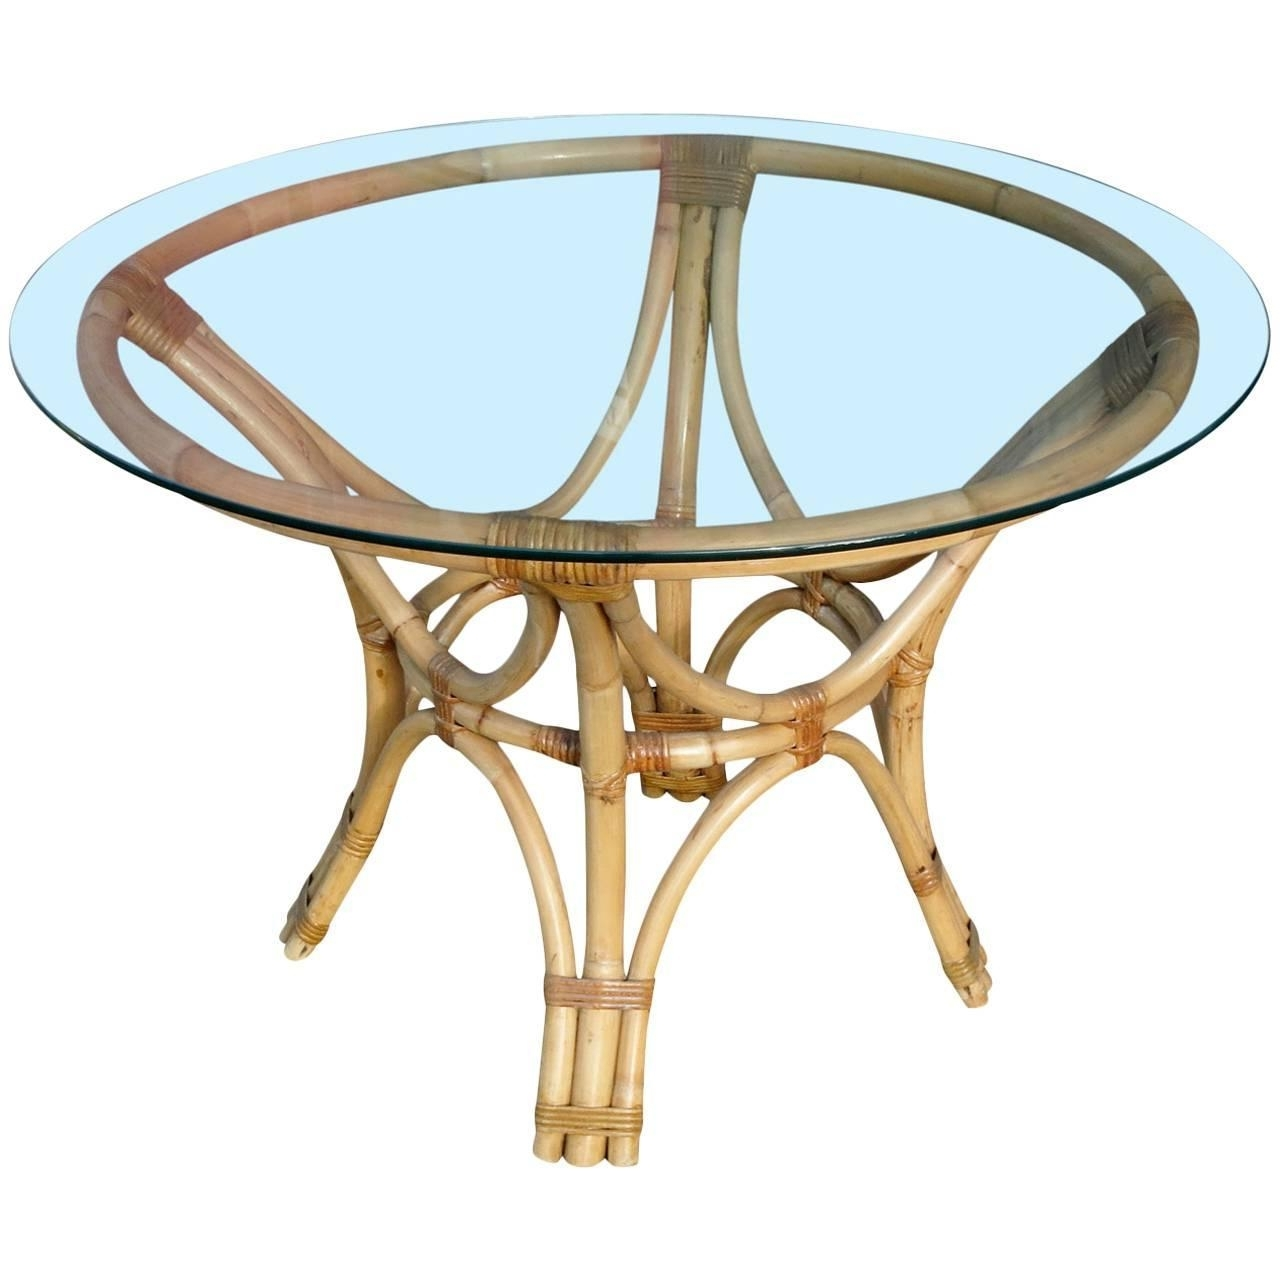 Wicker And Glass Dining Tables Within Trendy Restored Rattan Bentwood Dining Table With Round Glass Top For Sale (View 8 of 25)